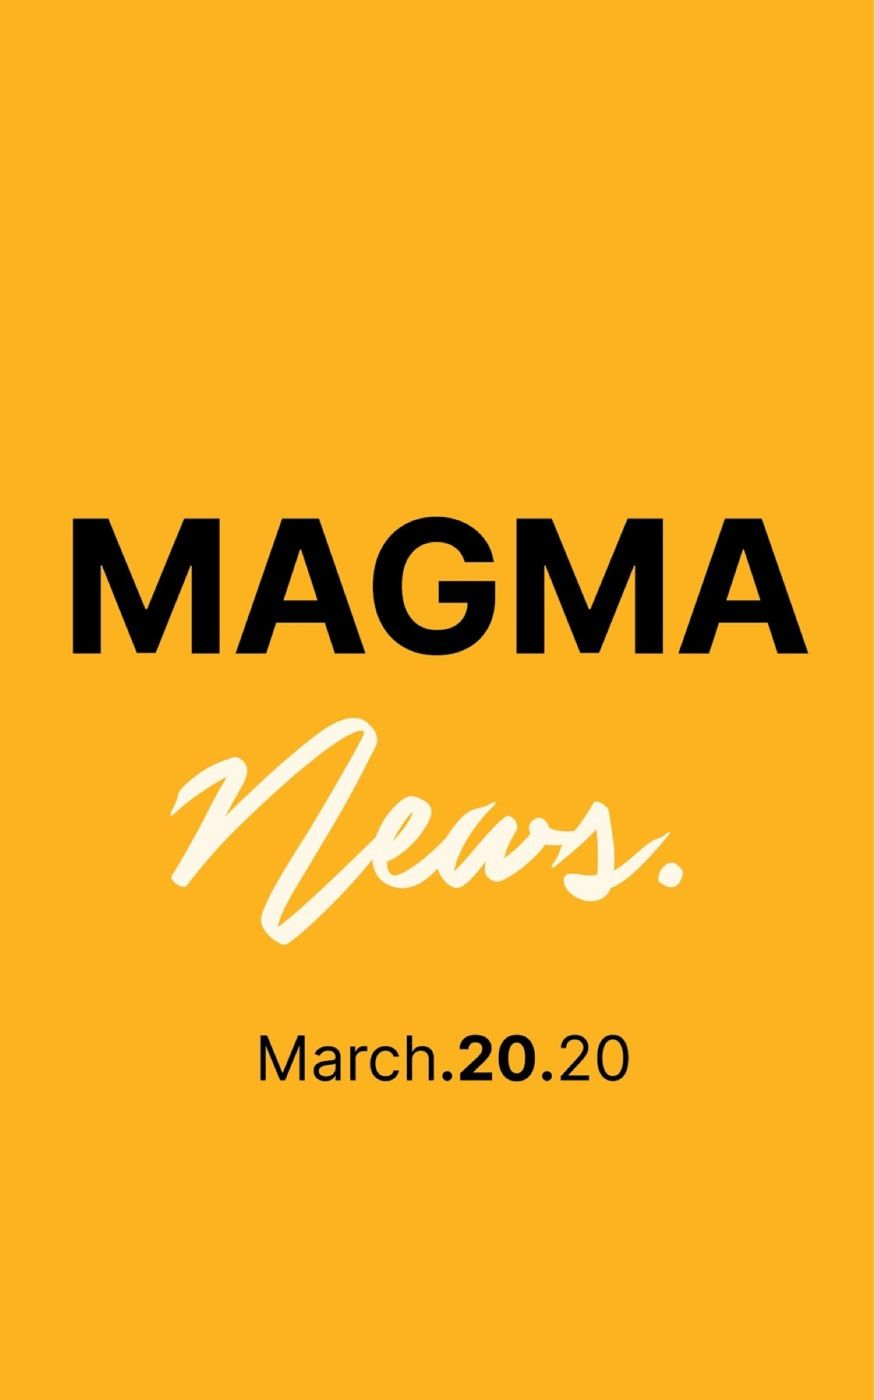 Magma News | March 20, 2020  -Coronavirus Update -Tax Day moved to July 15 -General Motors Shfits production to Medical supplies. -Californians Can Still Surf During Stay-At-Home Order, But Should They? -Coronavirus could change movie distribution model. -Tom Brady Signs With Tampa Bay. -US Tourists Stranded Abroad. Check back every Monday, Wednesday & Friday